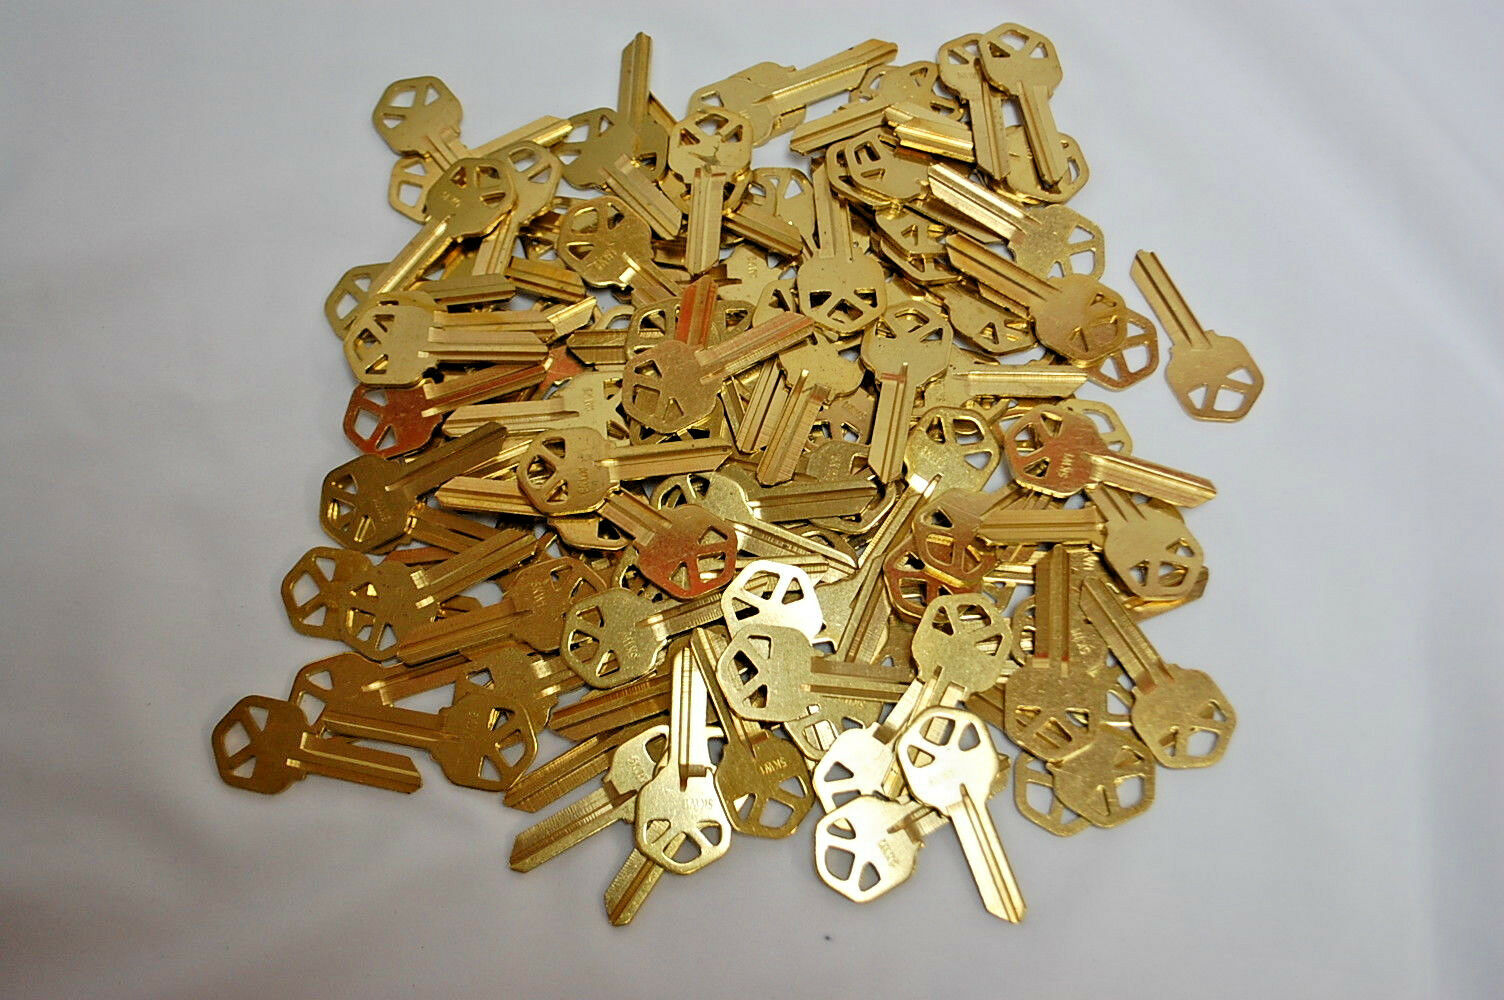 1-Lot of 123   SOLID BRASS 5-PIN KEY BLANKS KW1 (NEW) ( S8241)